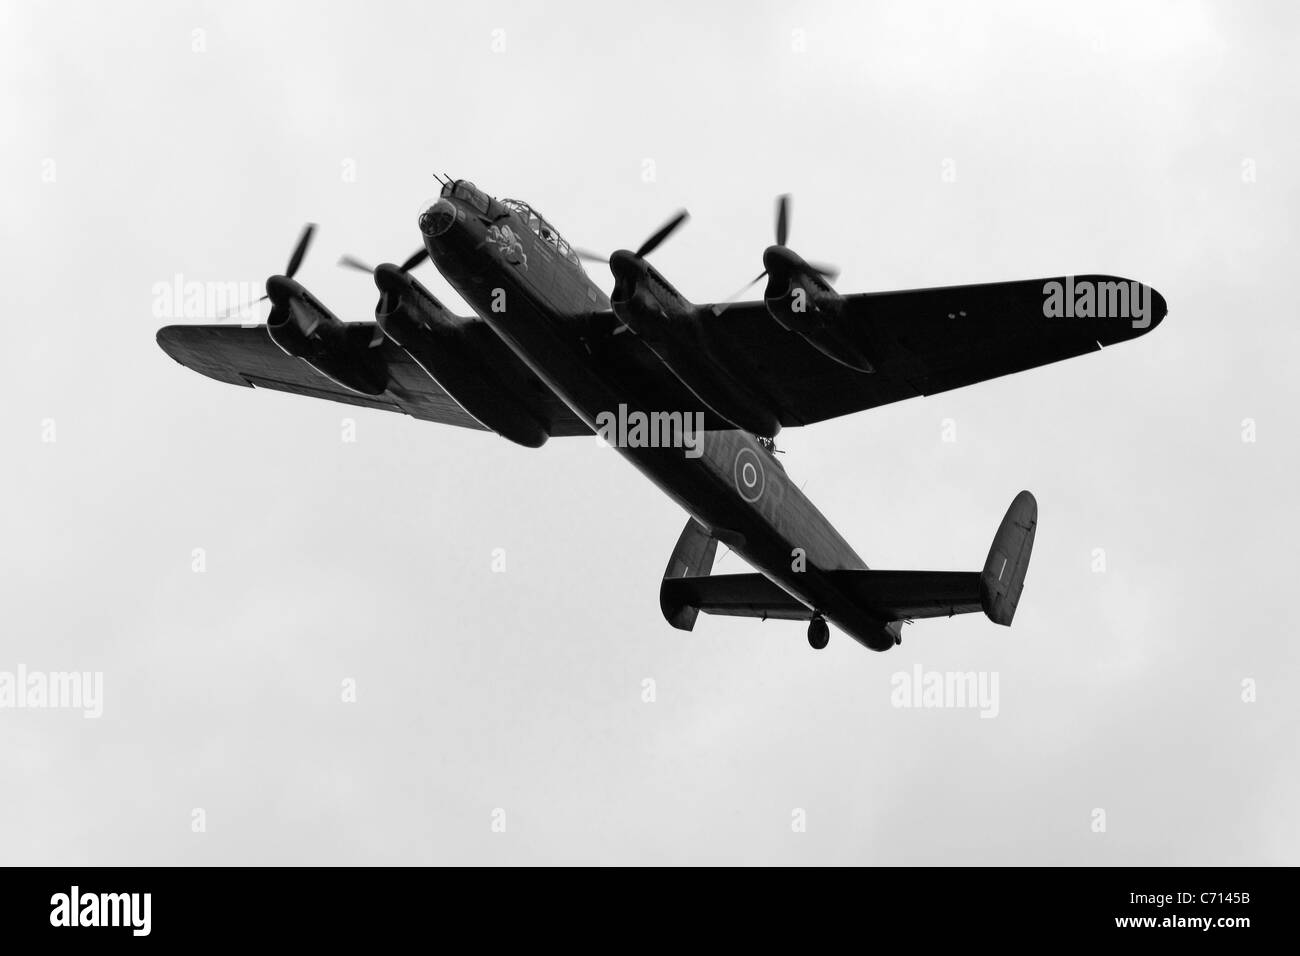 B/W WW2 British RAF Avro Lancaster Bomber Plane on a pass over an airfield during an Airshow - Stock Image